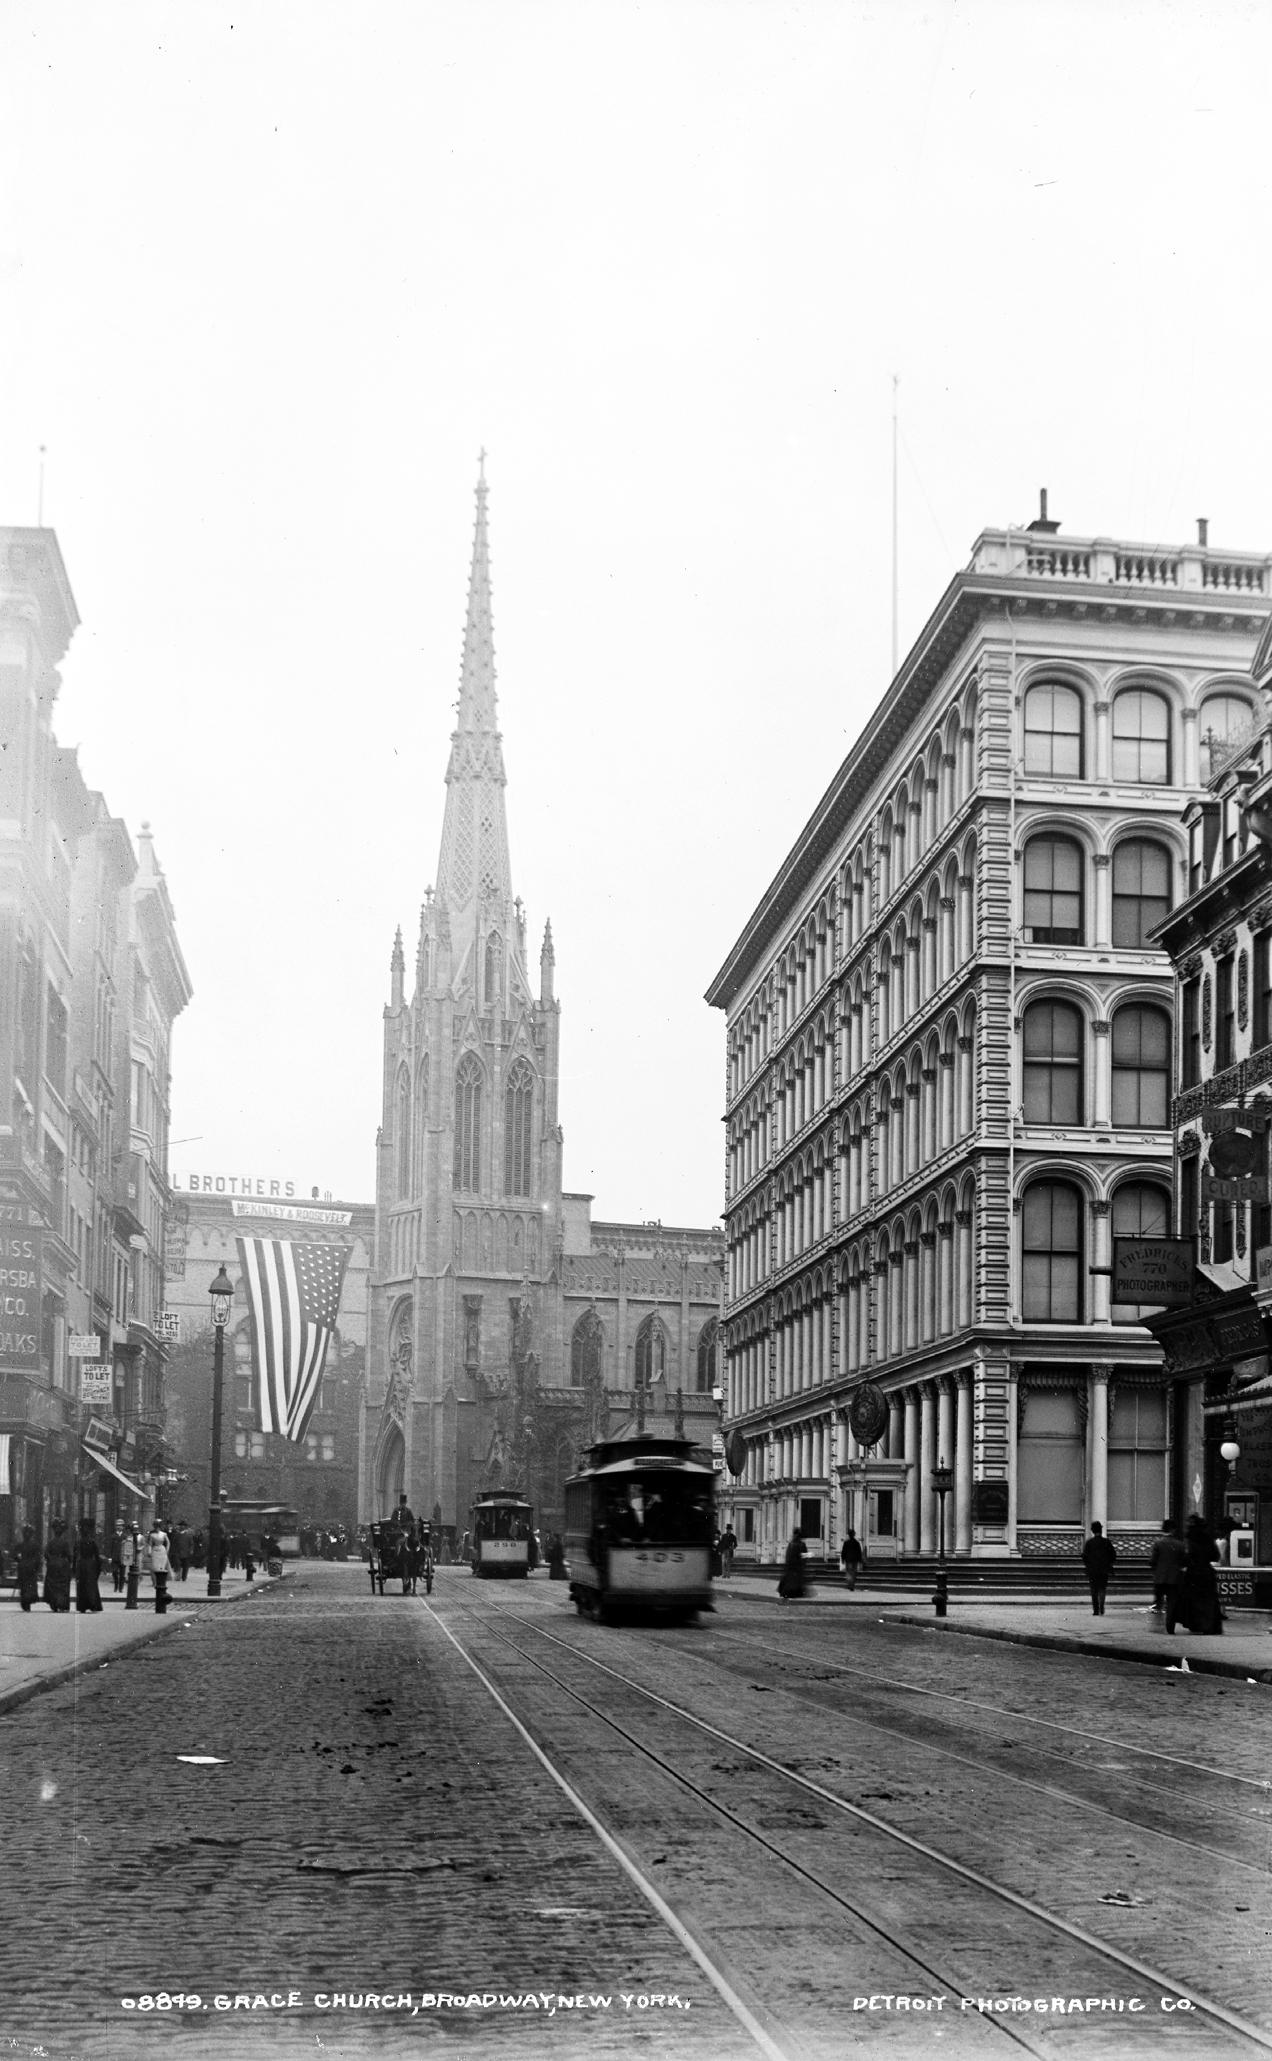 Grace Church is located at Broadway and 10th Street, Manhattan, photo depicts the marble spire, Library of Congress